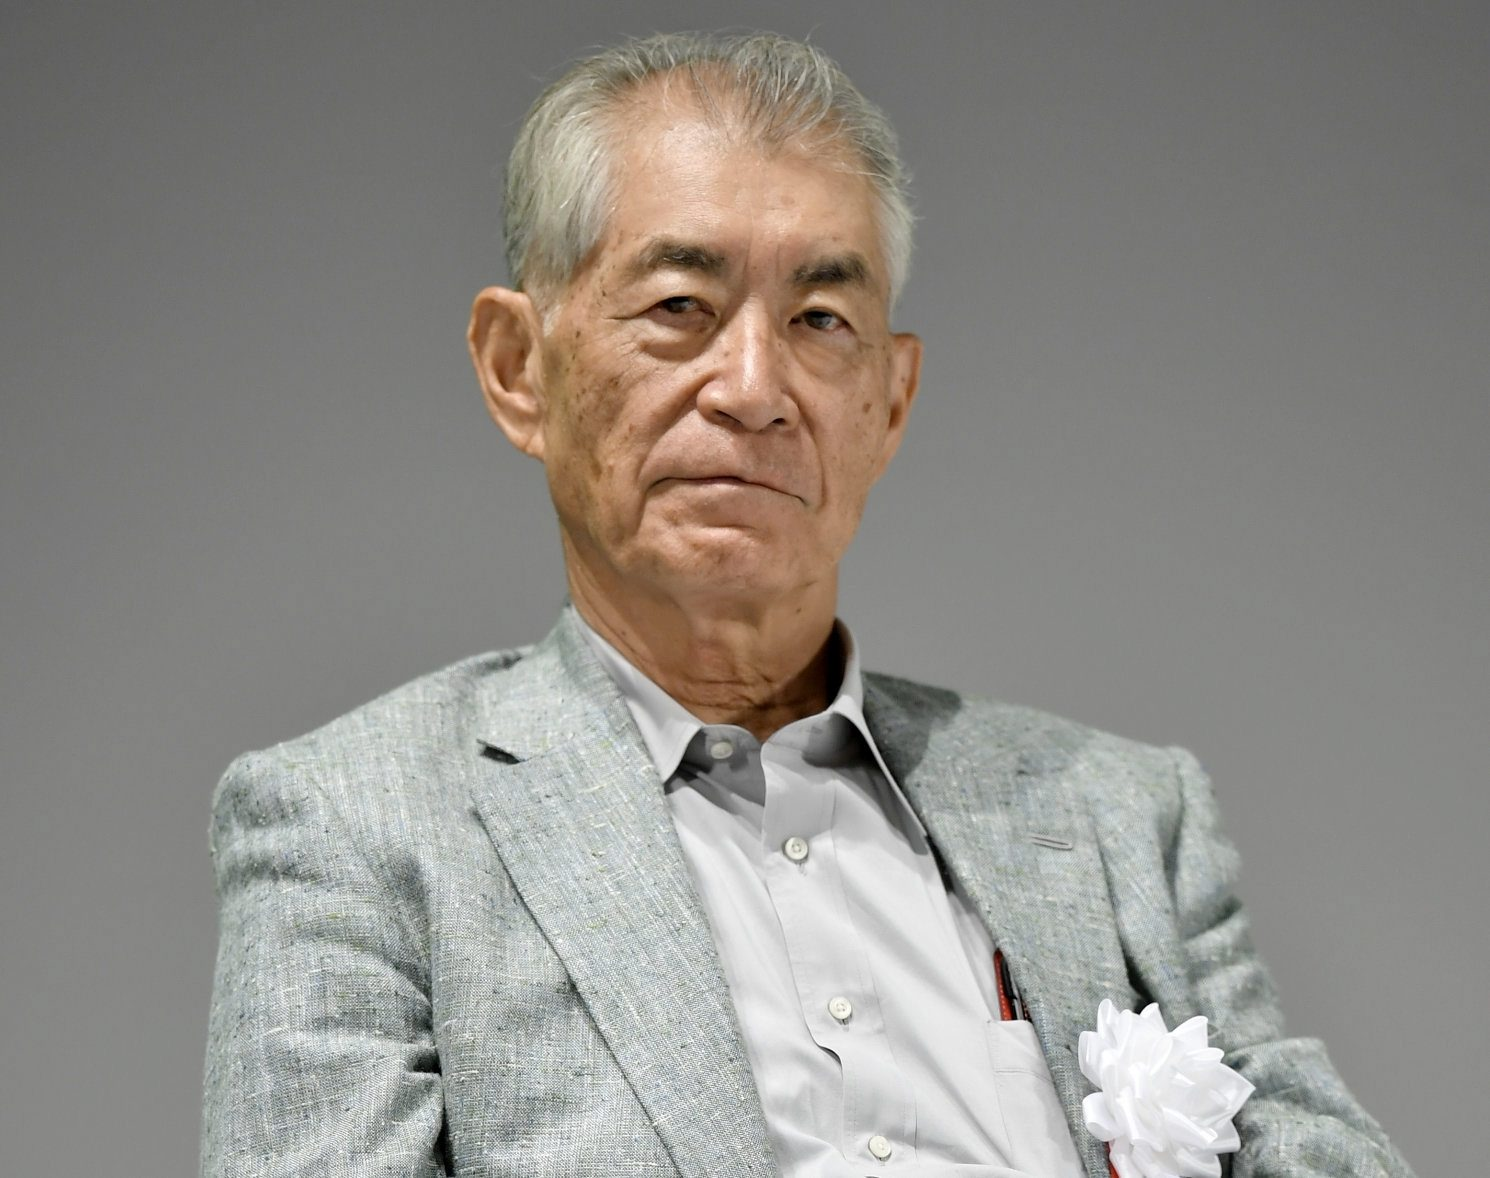 Kyoto University Professor Tasuku Honjo is pictured in Kyoto, Japan in this photo taken by Kyodo September 17, 2018. Picture taken September 17, 2018. Mandatory credit Kyodo/via REUTERS ATTENTION EDITORS - THIS IMAGE WAS PROVIDED BY A THIRD PARTY. MANDATORY CREDIT. JAPAN OUT. THIS IMAGE WAS PROCESSED BY REUTERS TO ENHANCE QUALITY, AN UNPROCESSED VERSION HAS BEEN PROVIDED SEPARATELY.